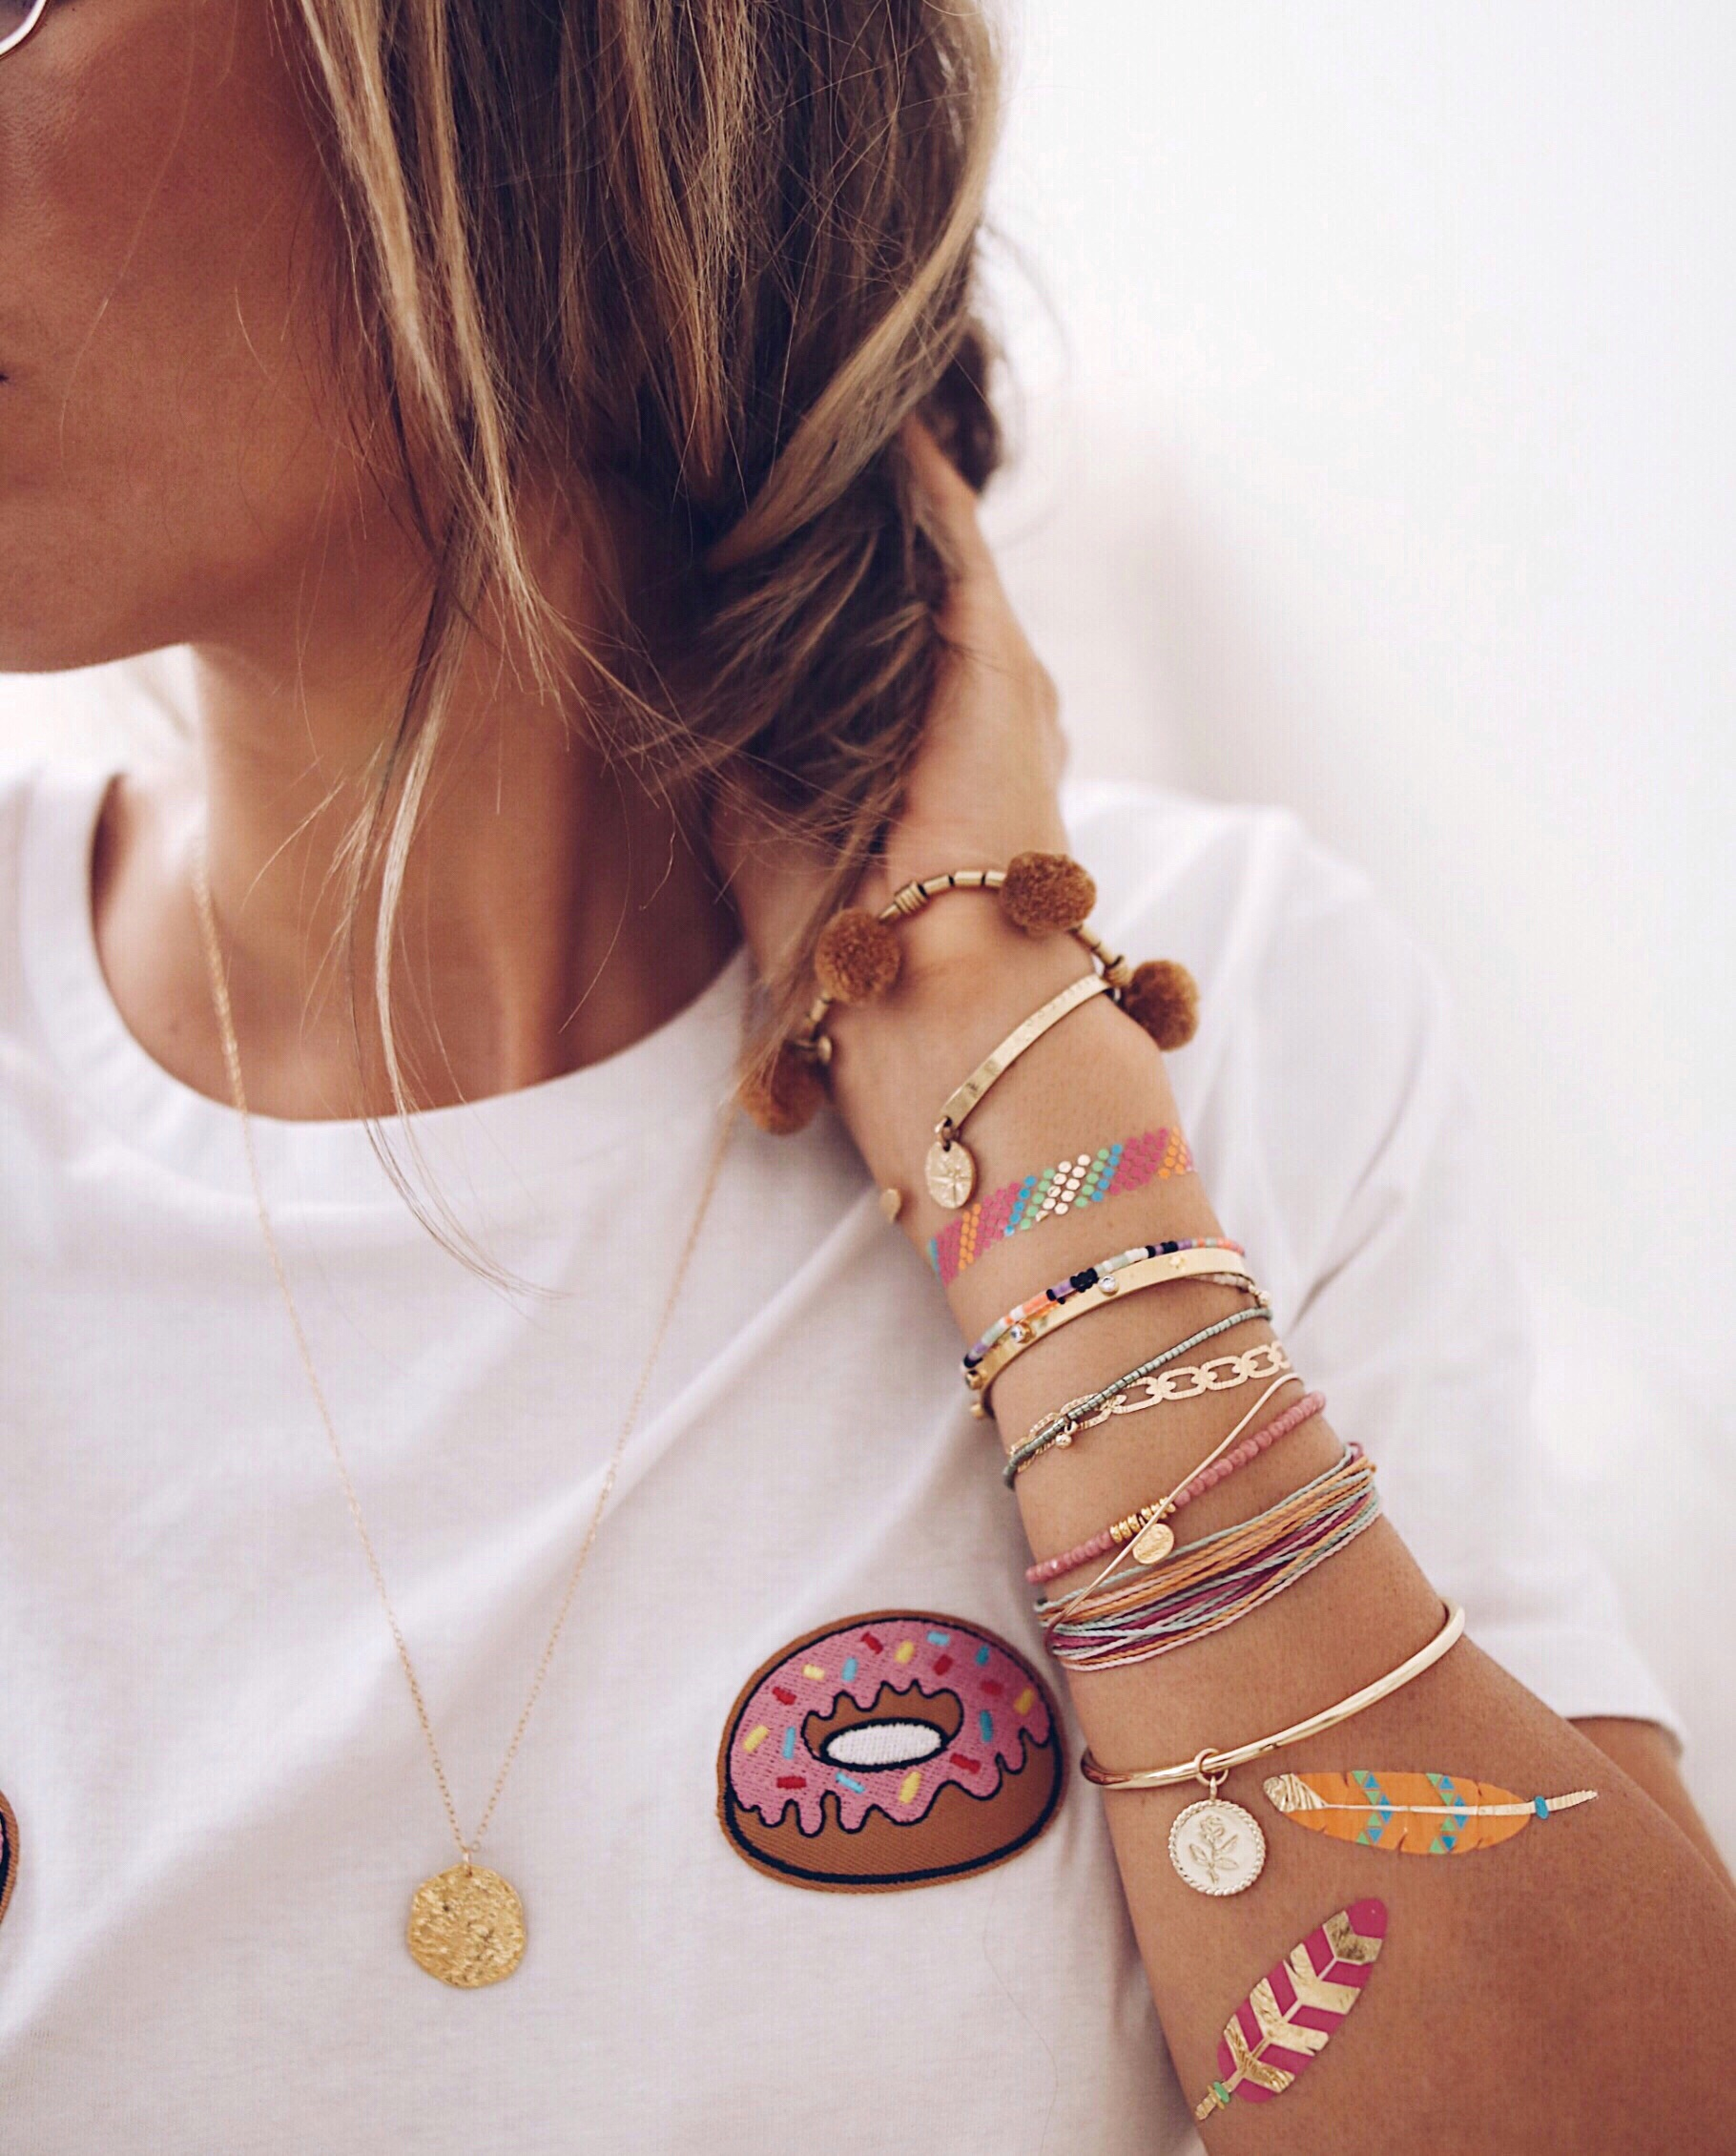 FLASHY ARM, arm candy, gold bangles, flash tatoos, colorful bracelets, jewelery addict, jewelry blogger